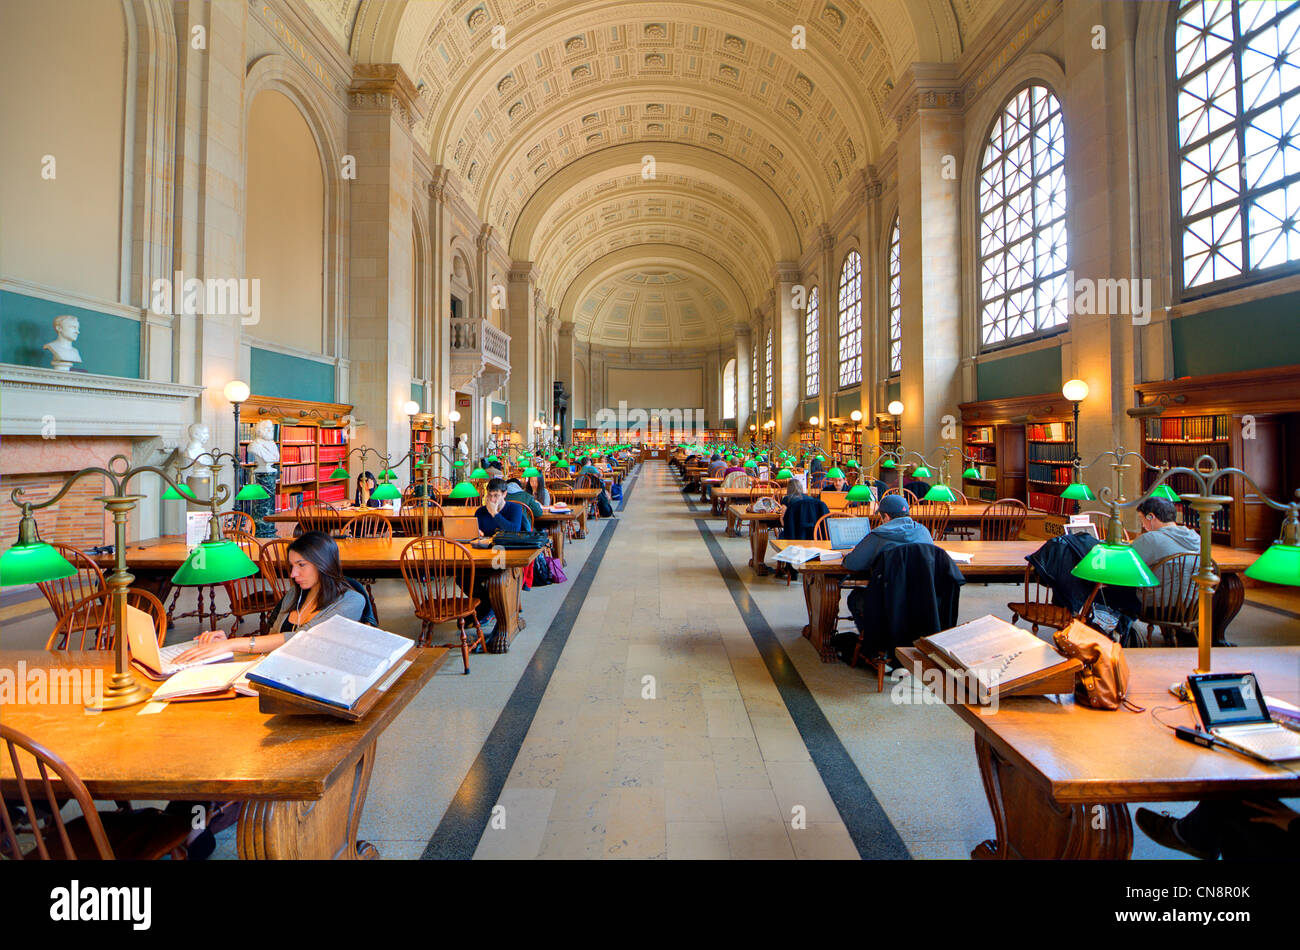 Visitors peruse materials at Bates Hall in Boston Public Library, the oldest publicly funded library in the USA. - Stock Image